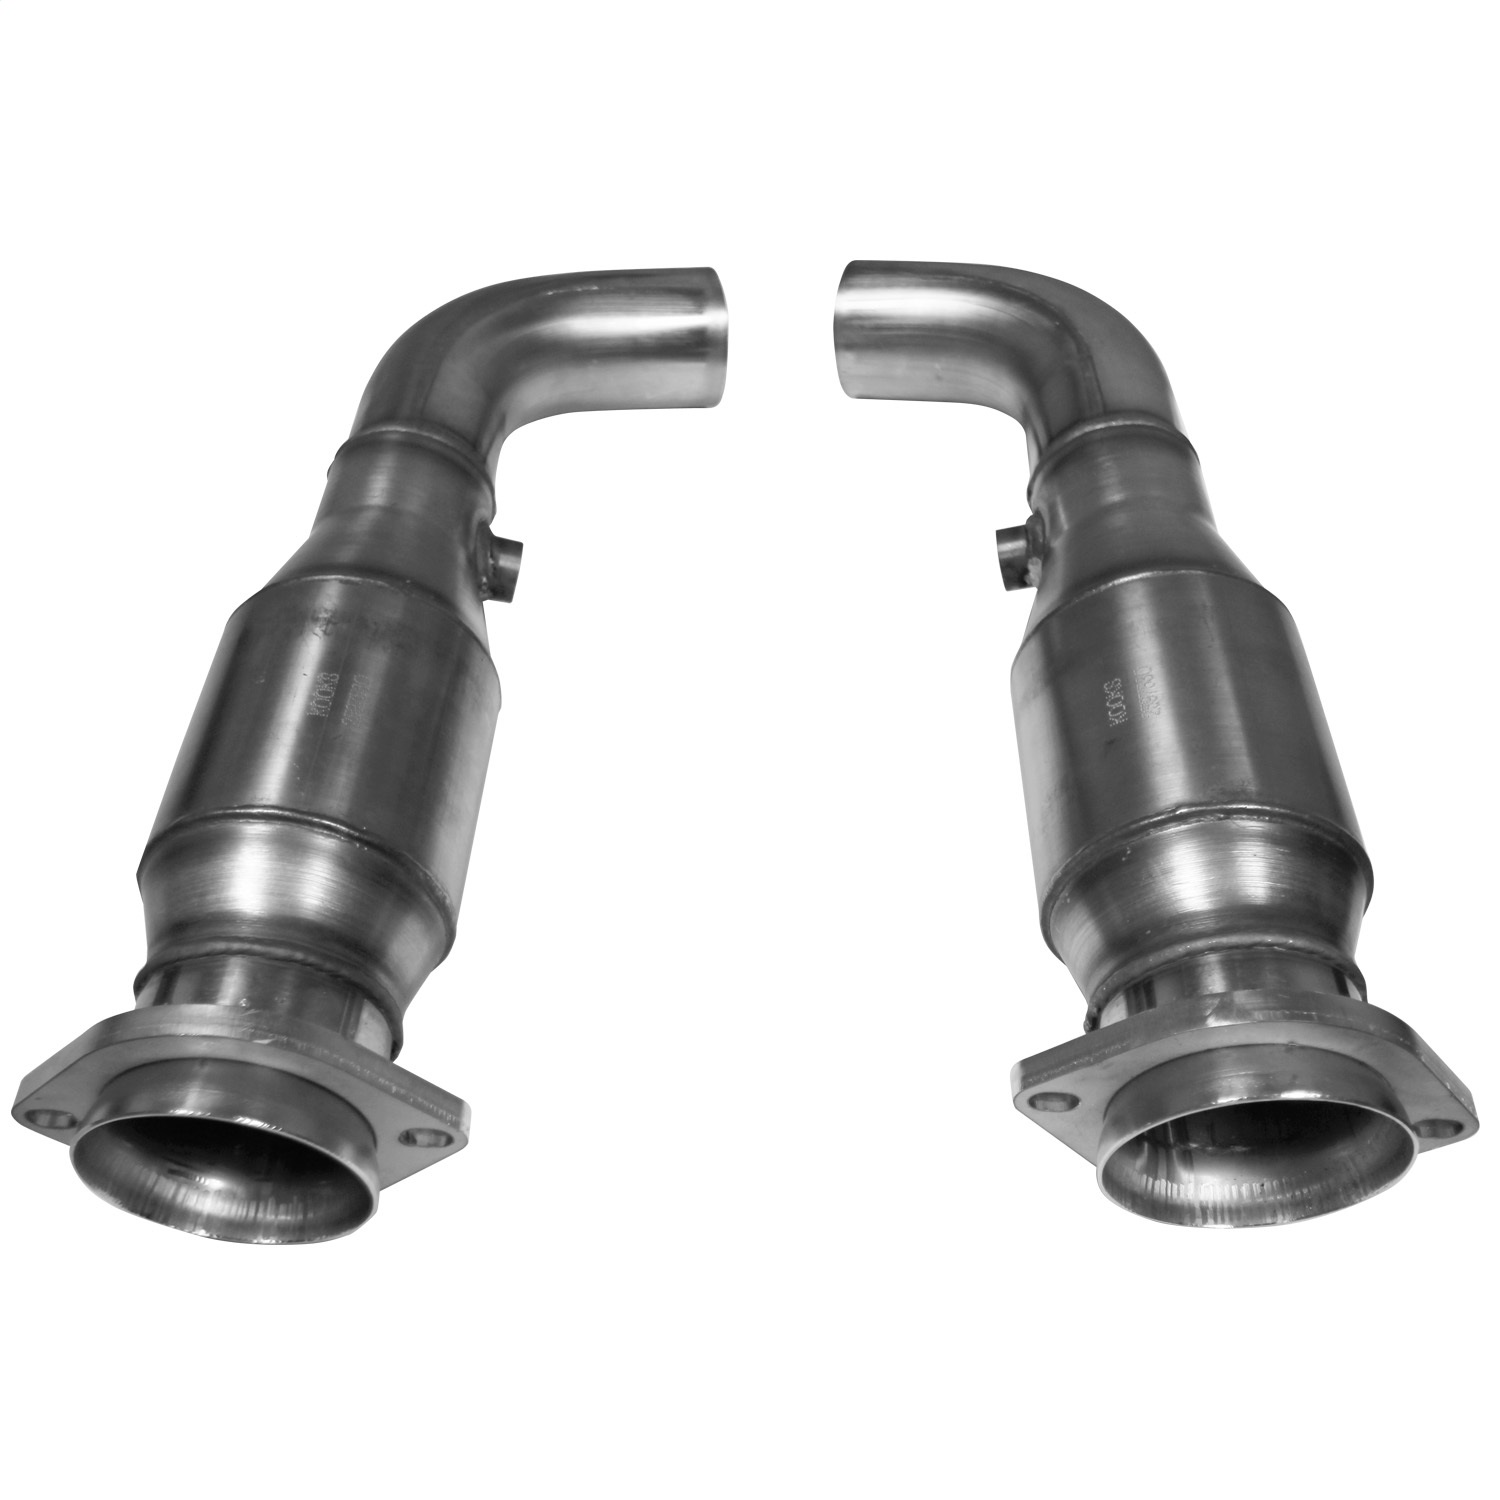 Kooks Custom Headers 24203250 Connection Pipes Fits 08-09 G8